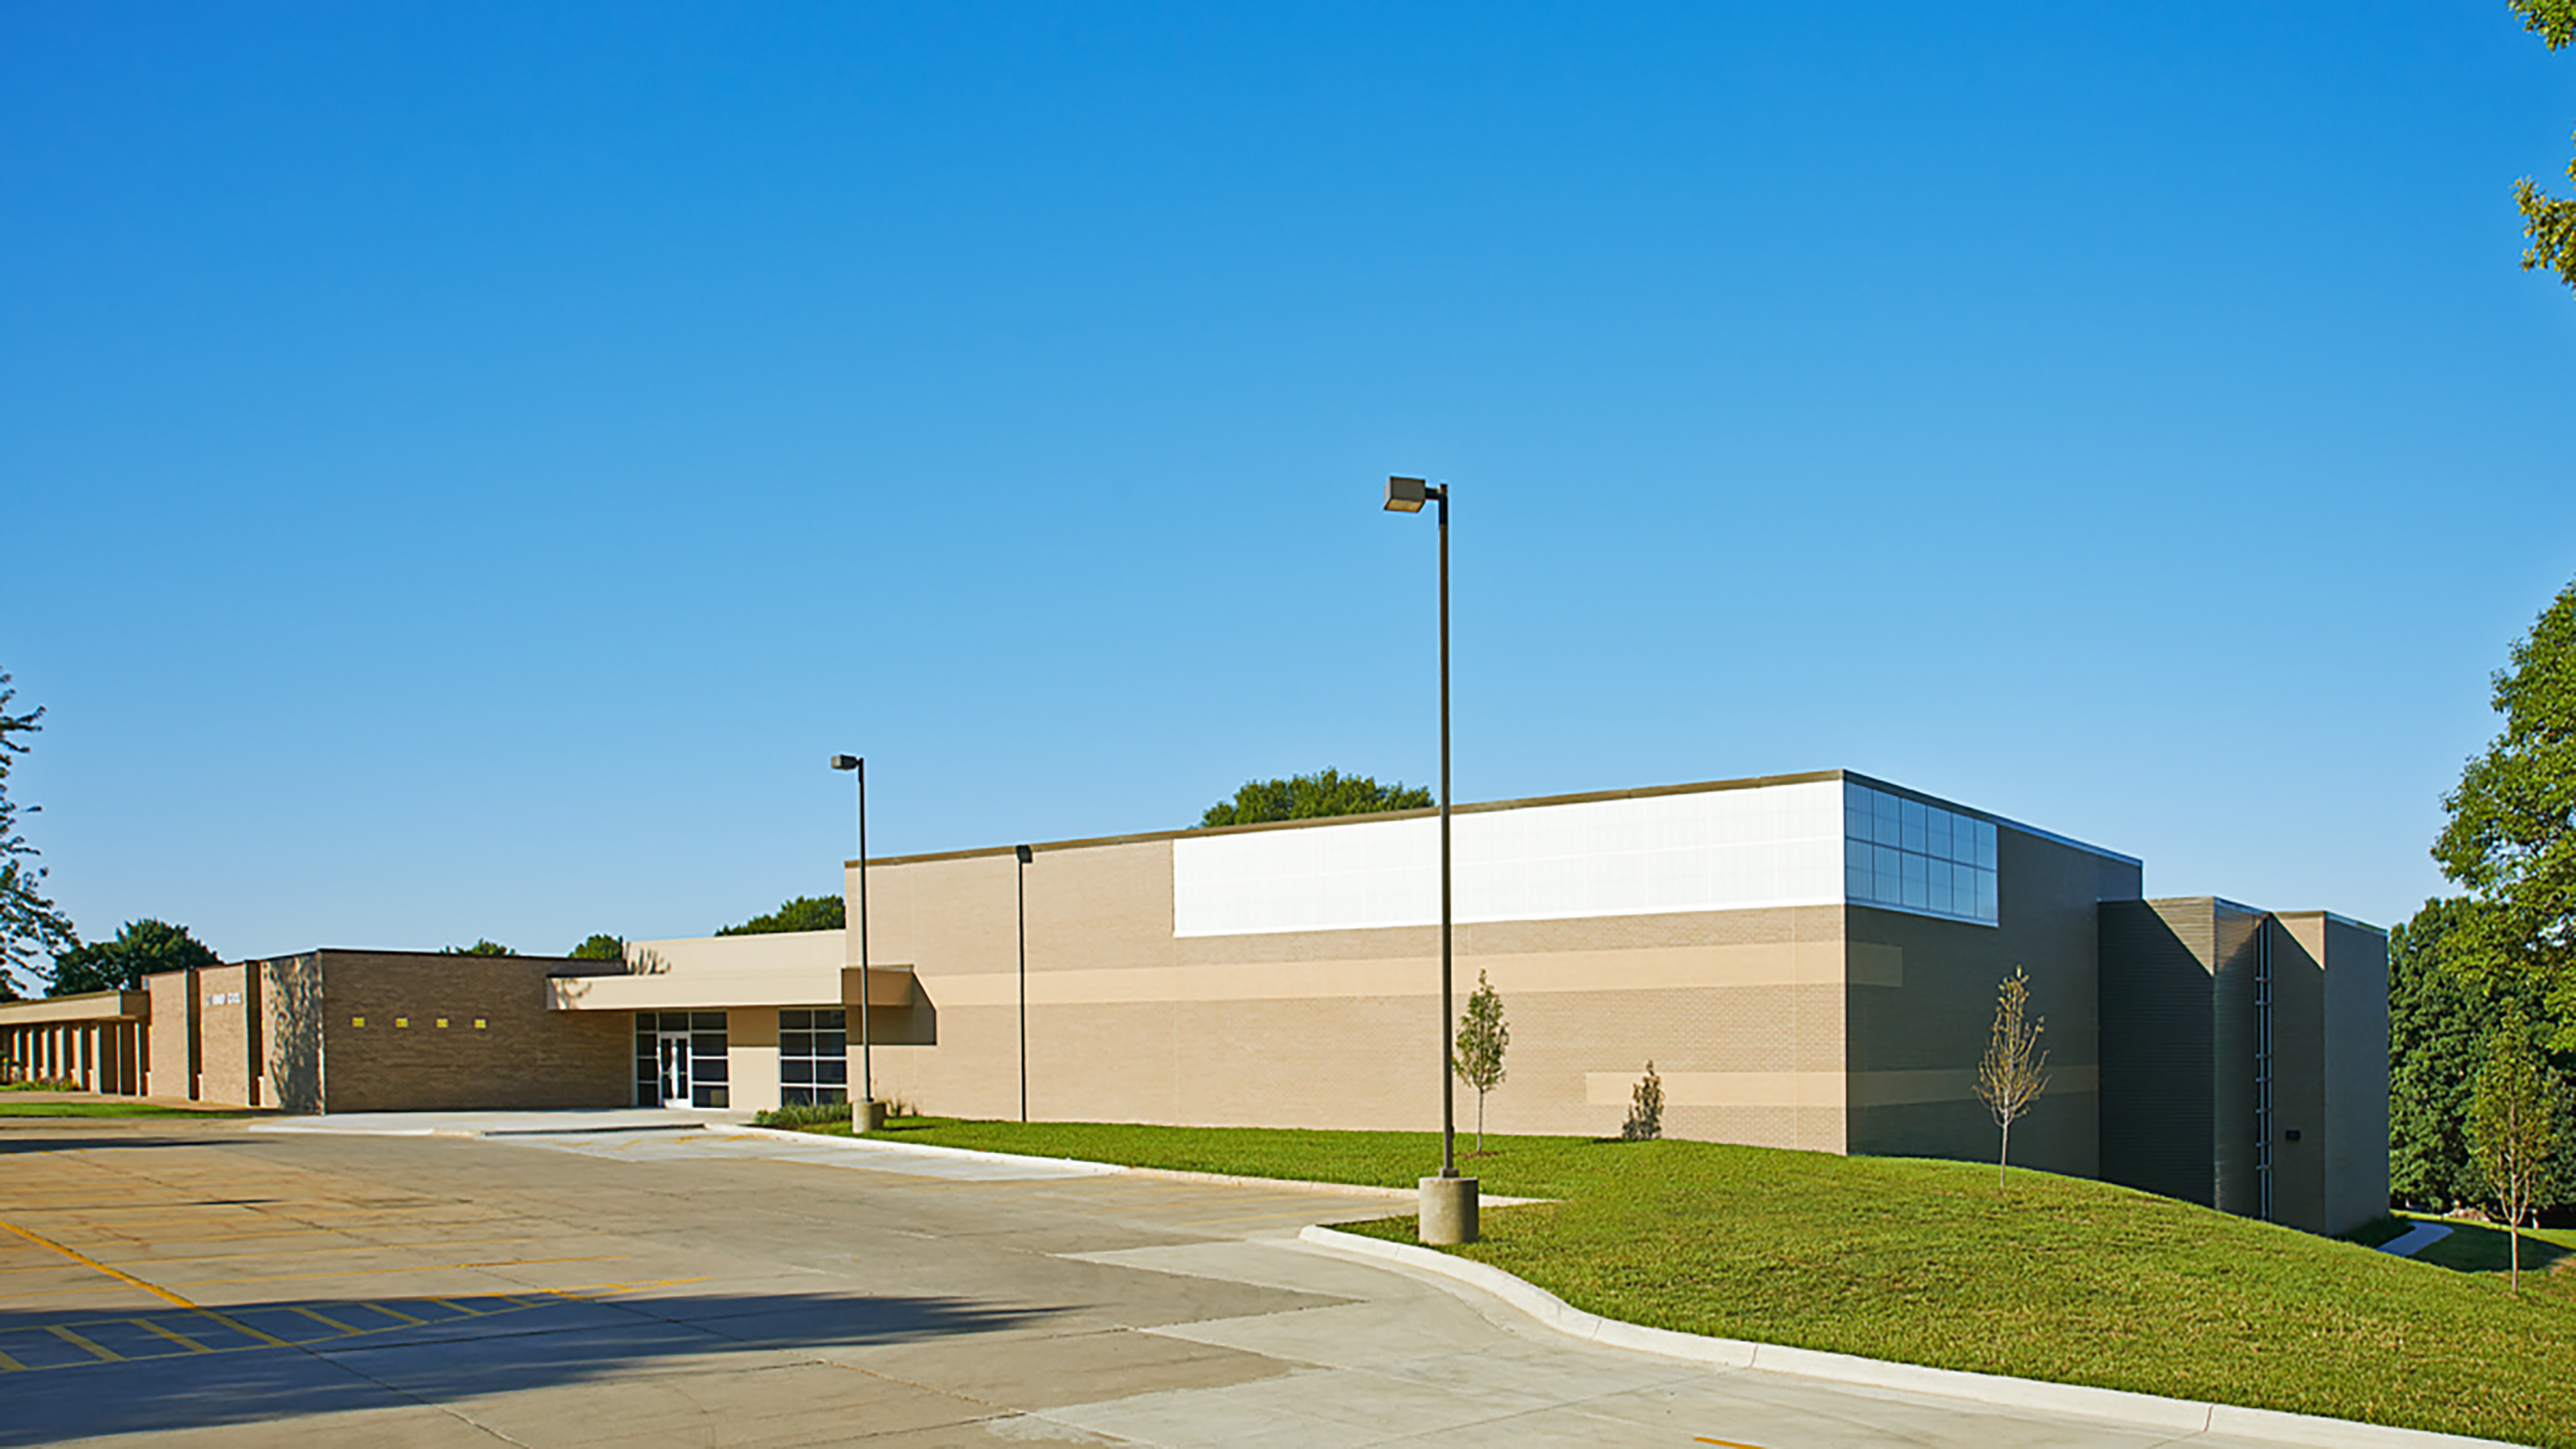 Dubuque Kennedy Elementary School Addition & Remodel